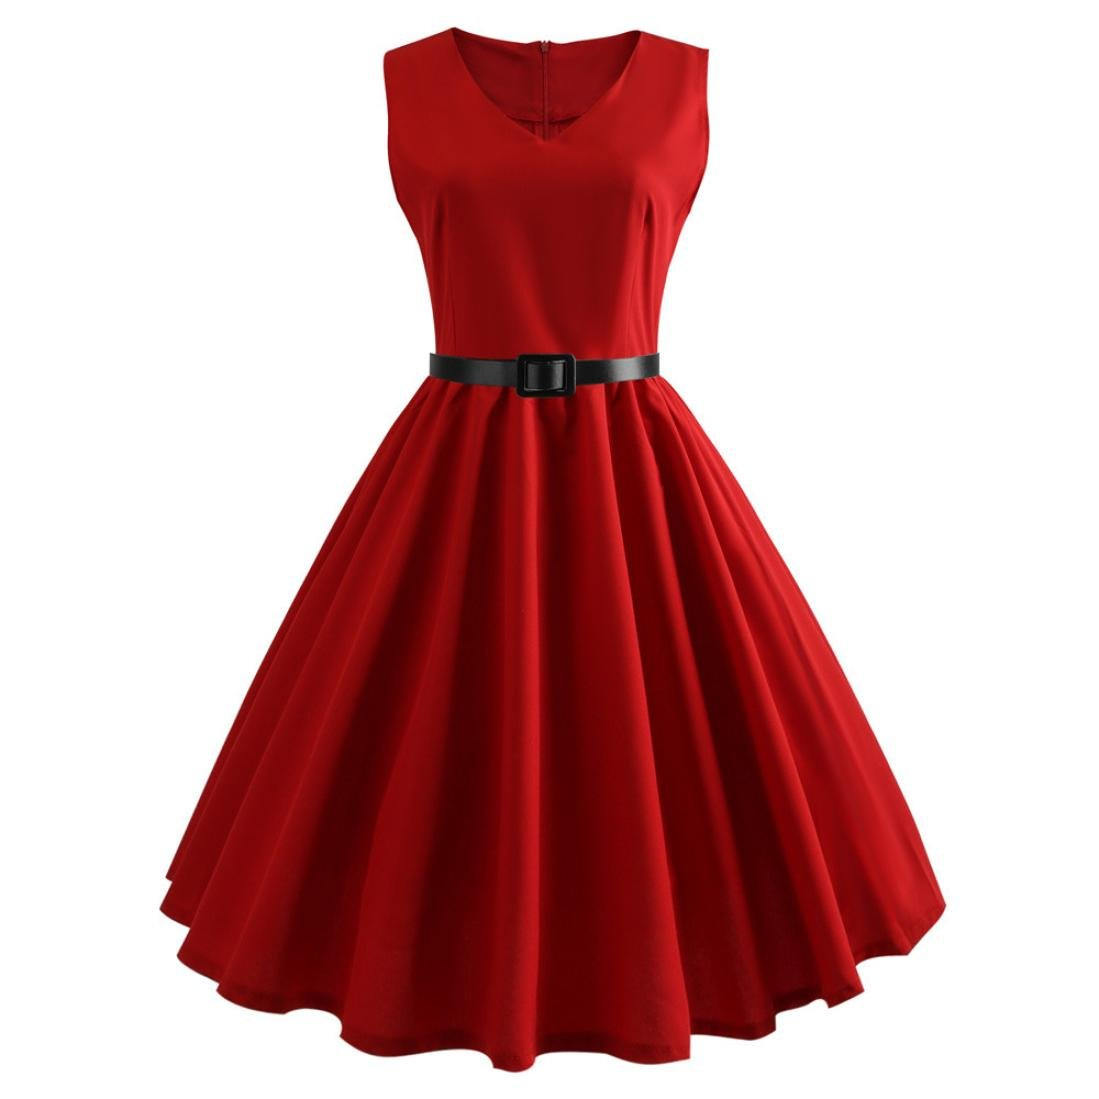 Veepola Women Dress,Lady Girl Vintage Sleeveless Evening Party Prom Swing Dress,3 Colors (Red, S)